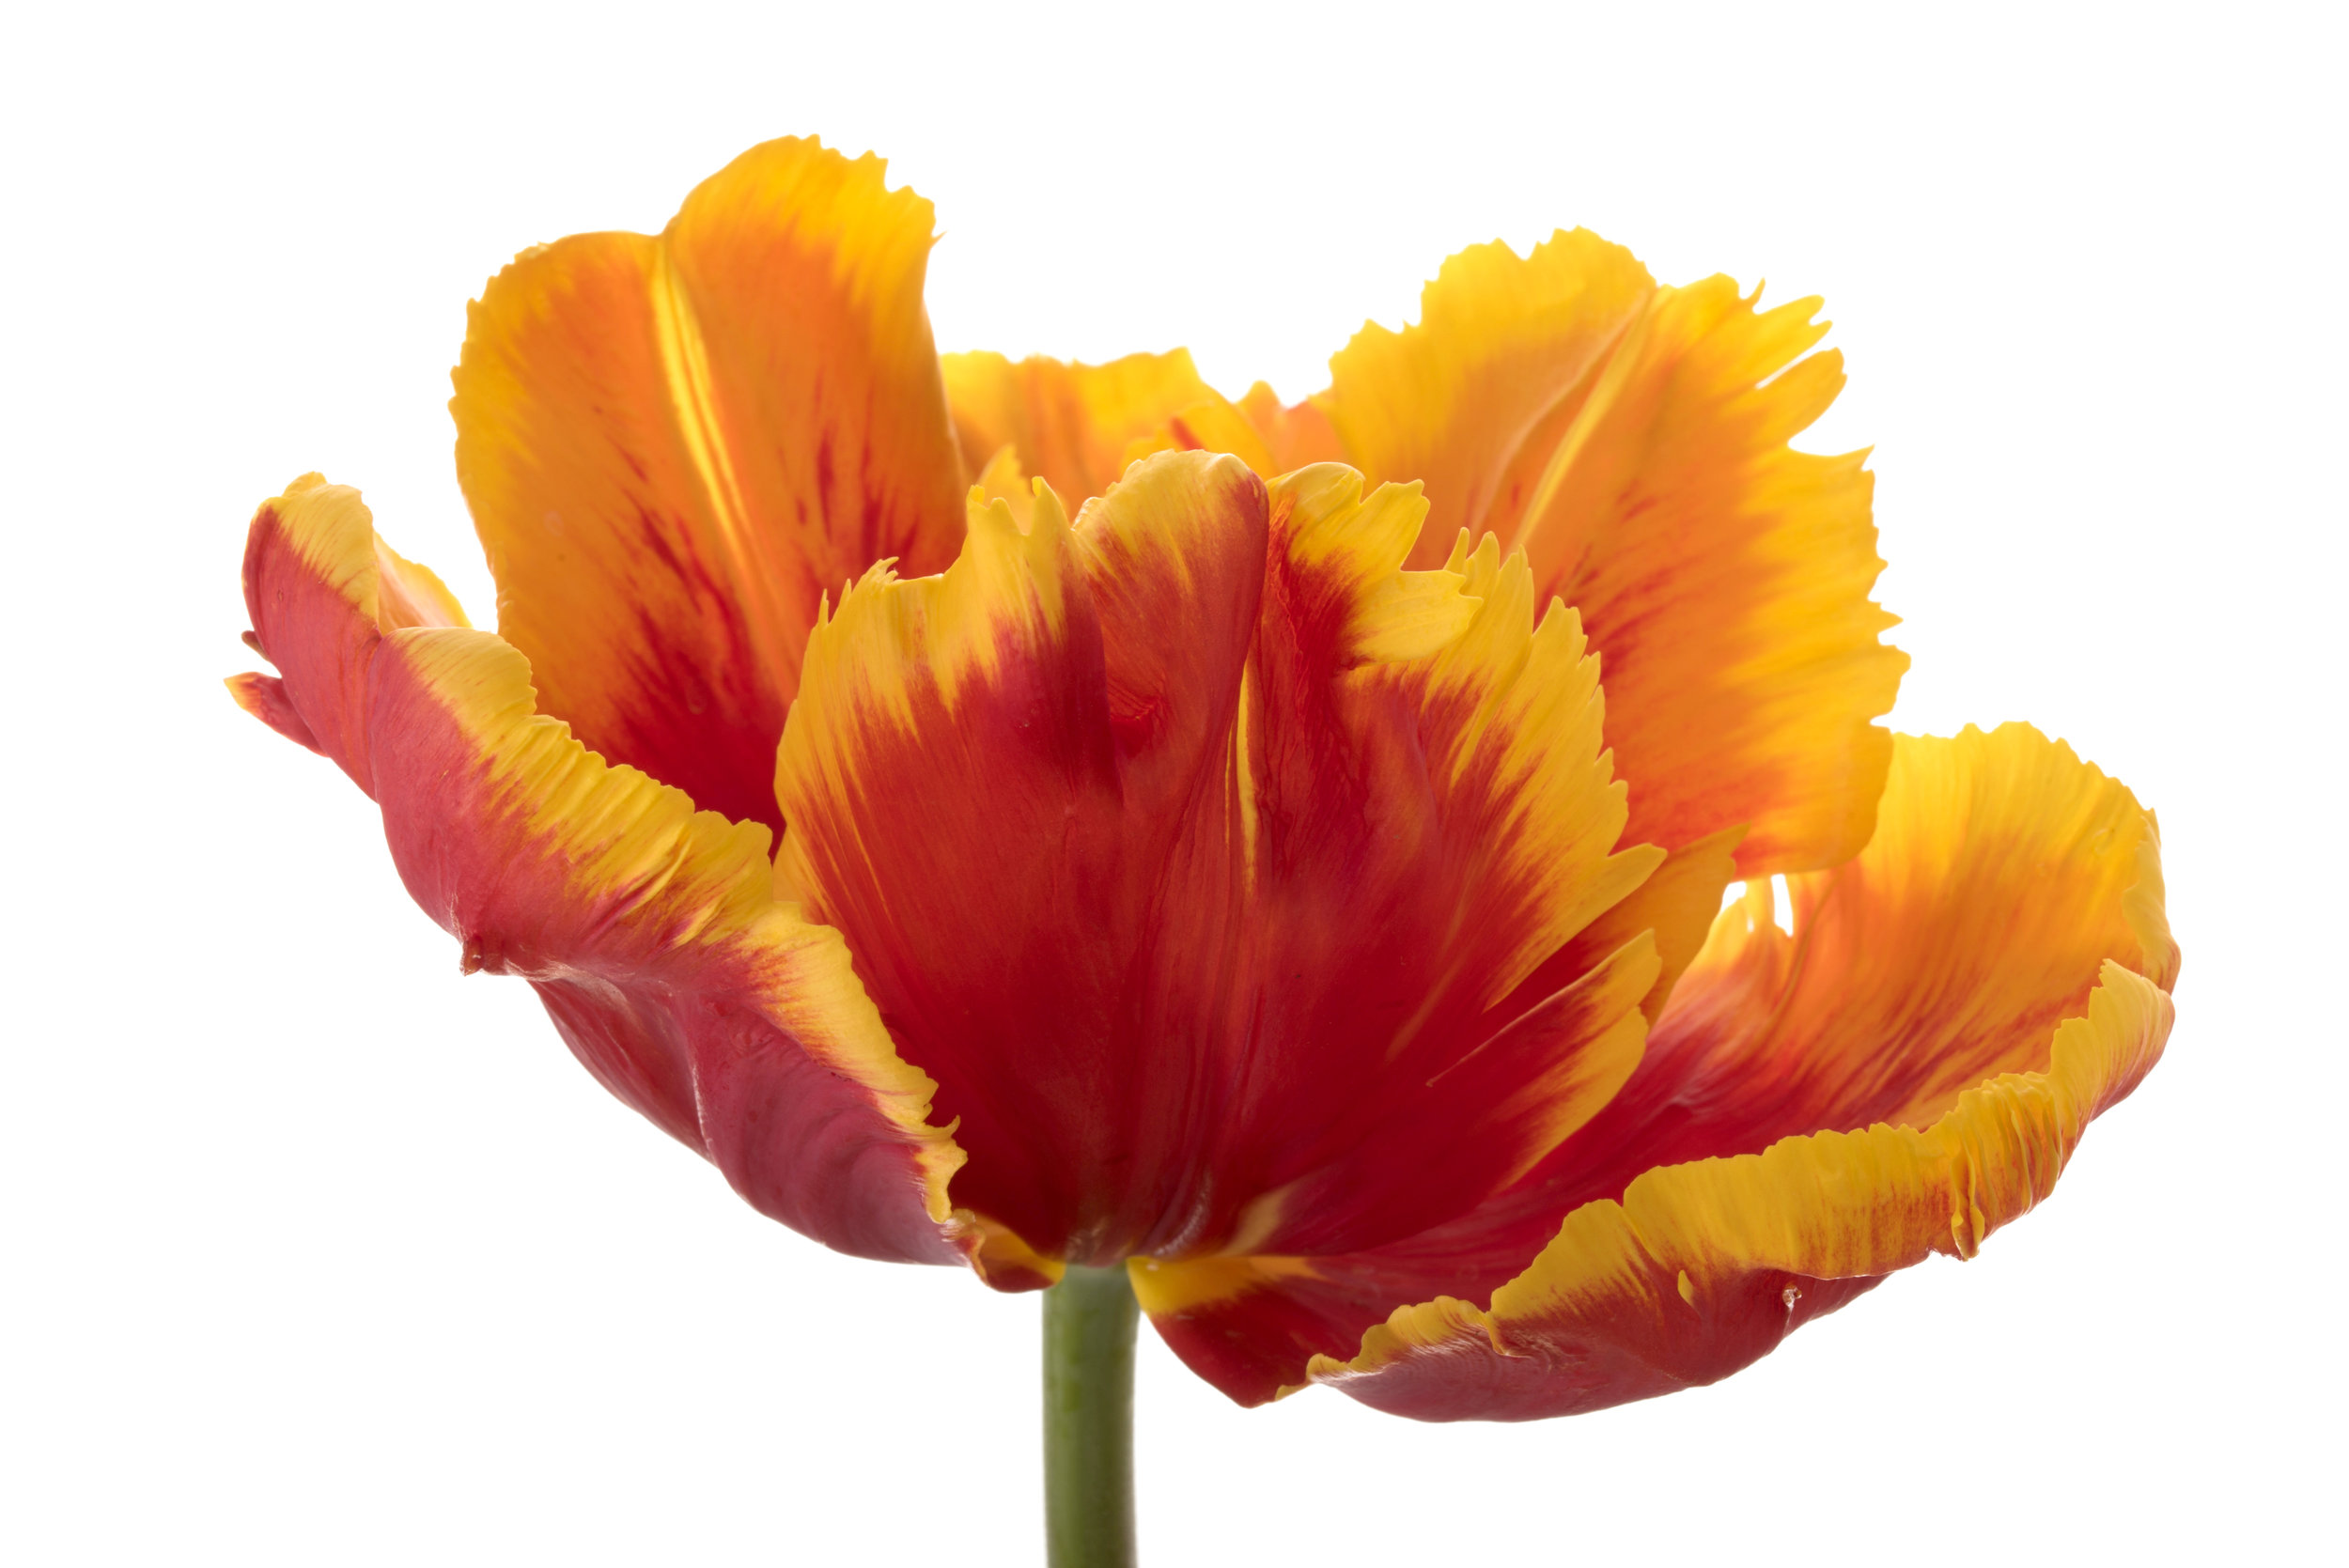 red orange parrot tulip